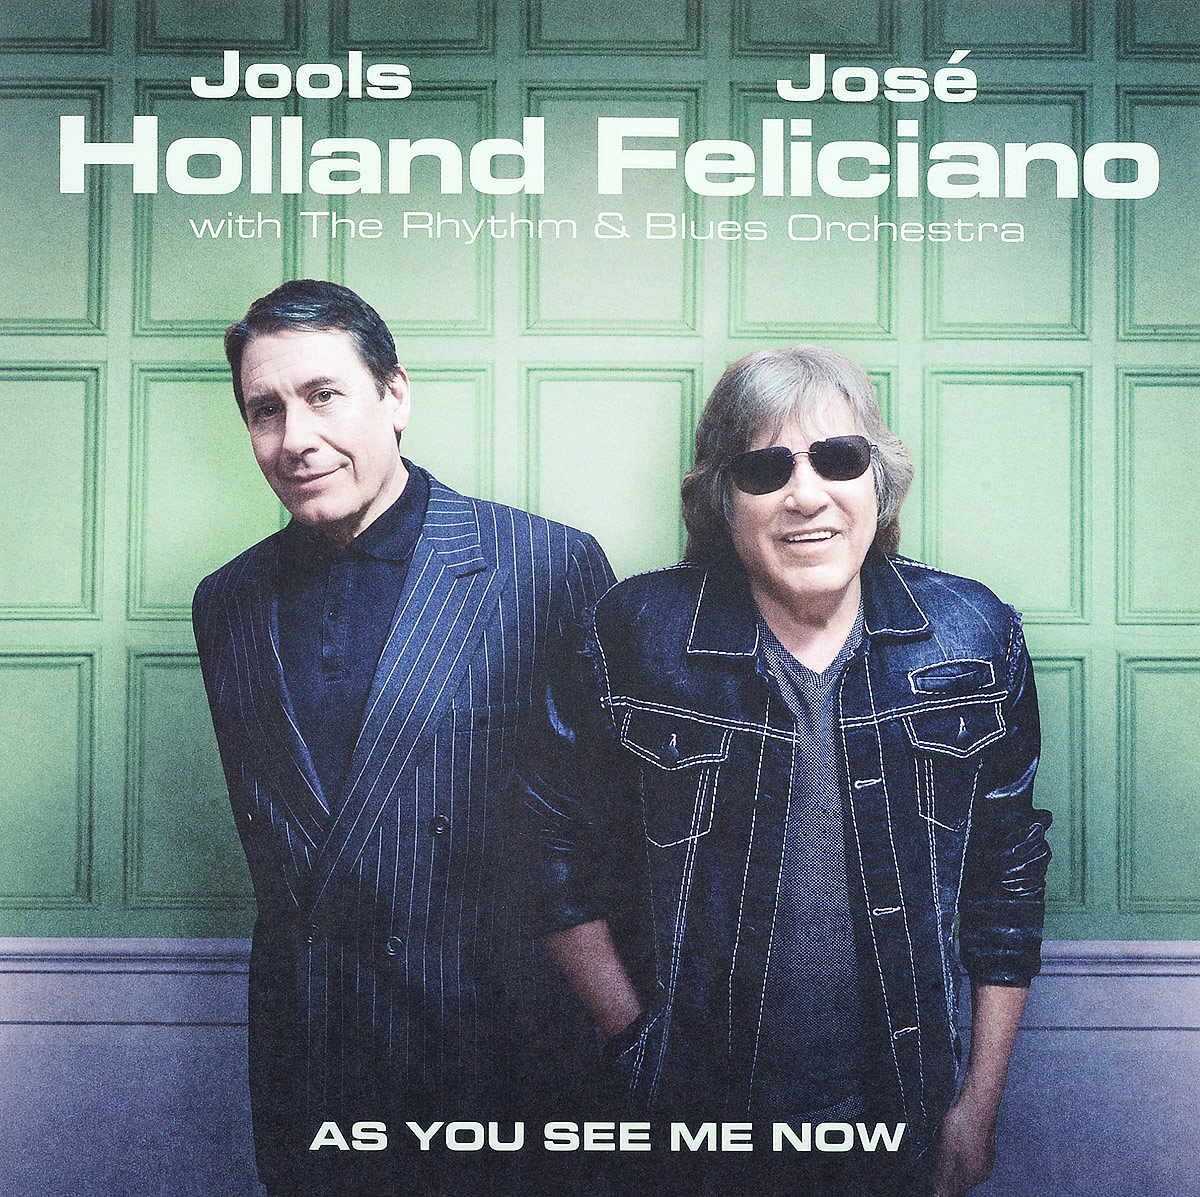 Джулс Холланд Jools Holland. Jose Feliciano. As You See Me Now (LP) jools holland jose feliciano jools holland jose feliciano as you see me now 180 gr